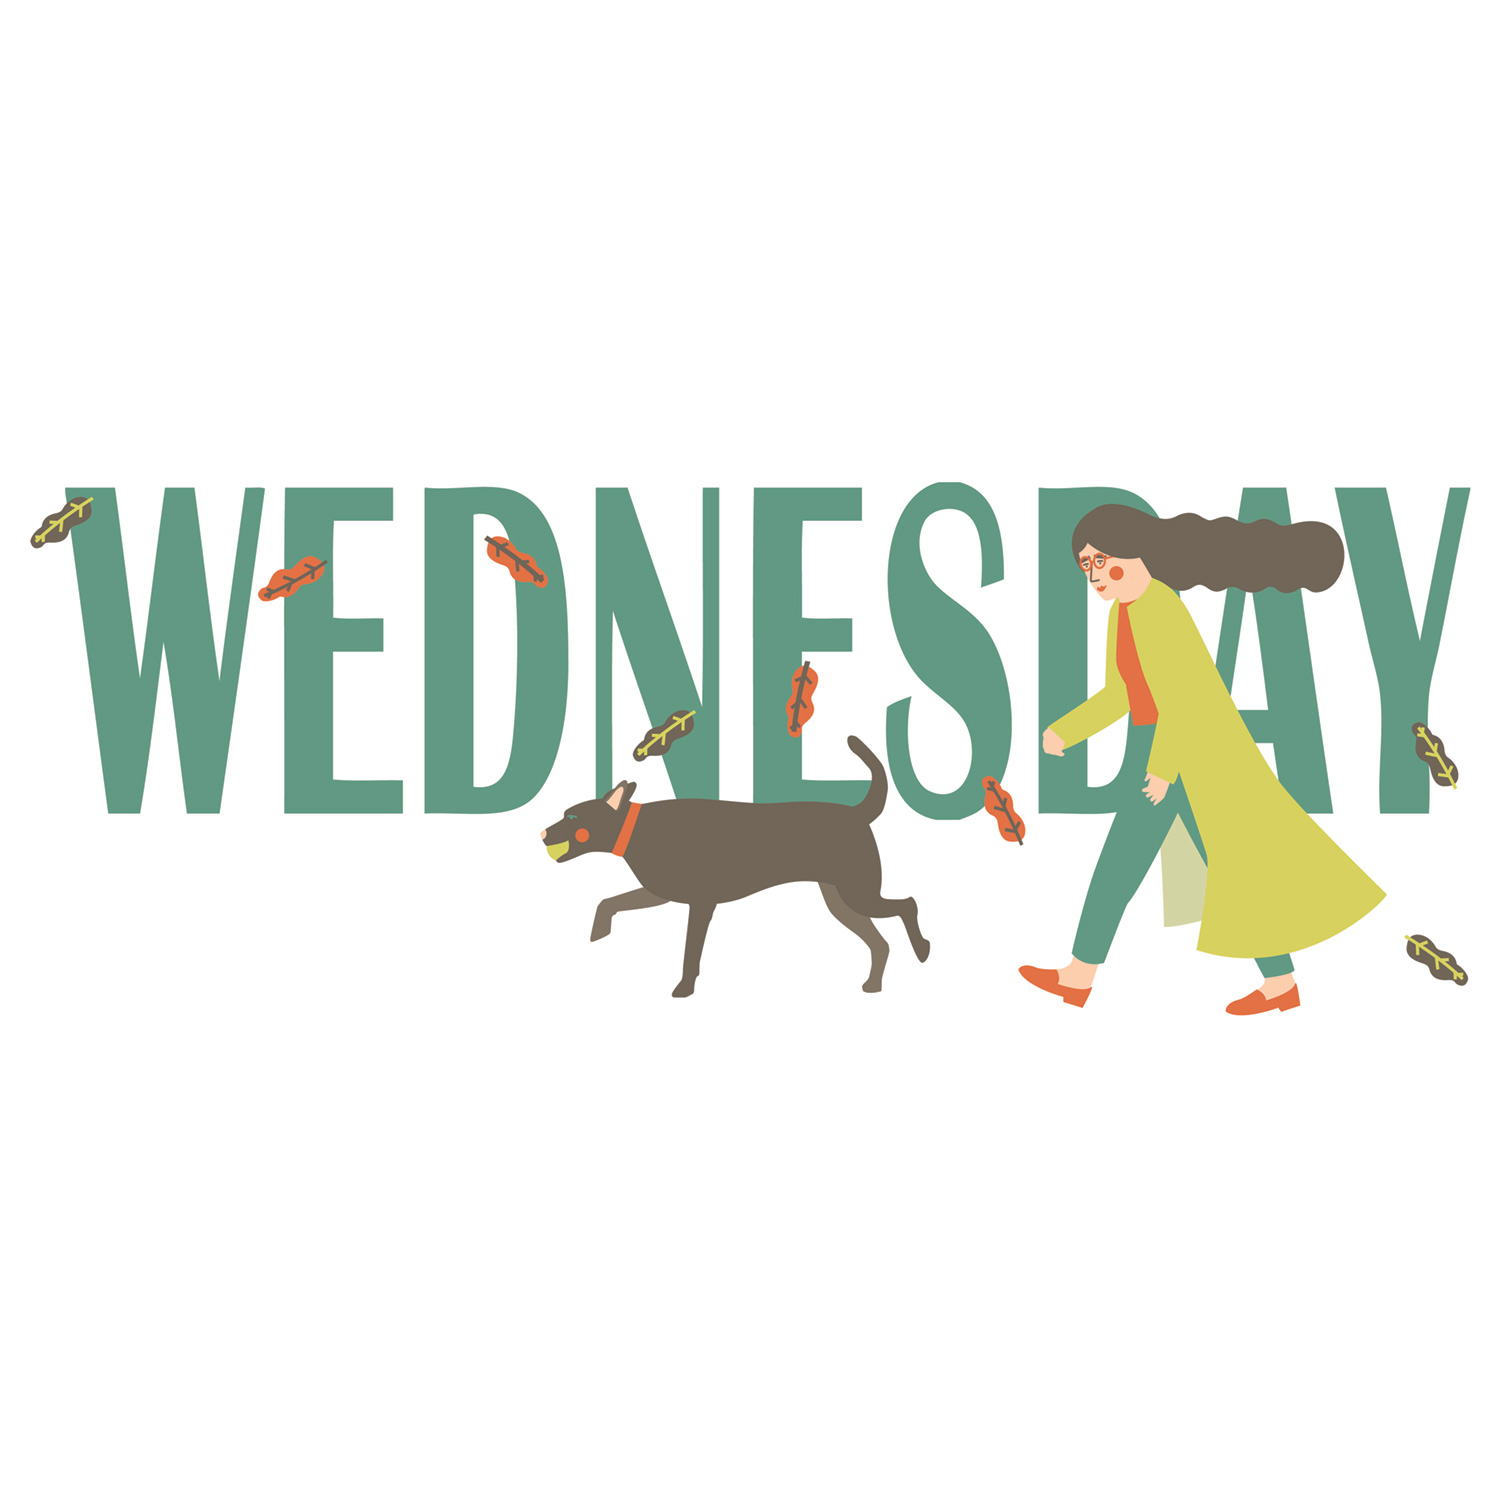 Windy wednesday design illustration